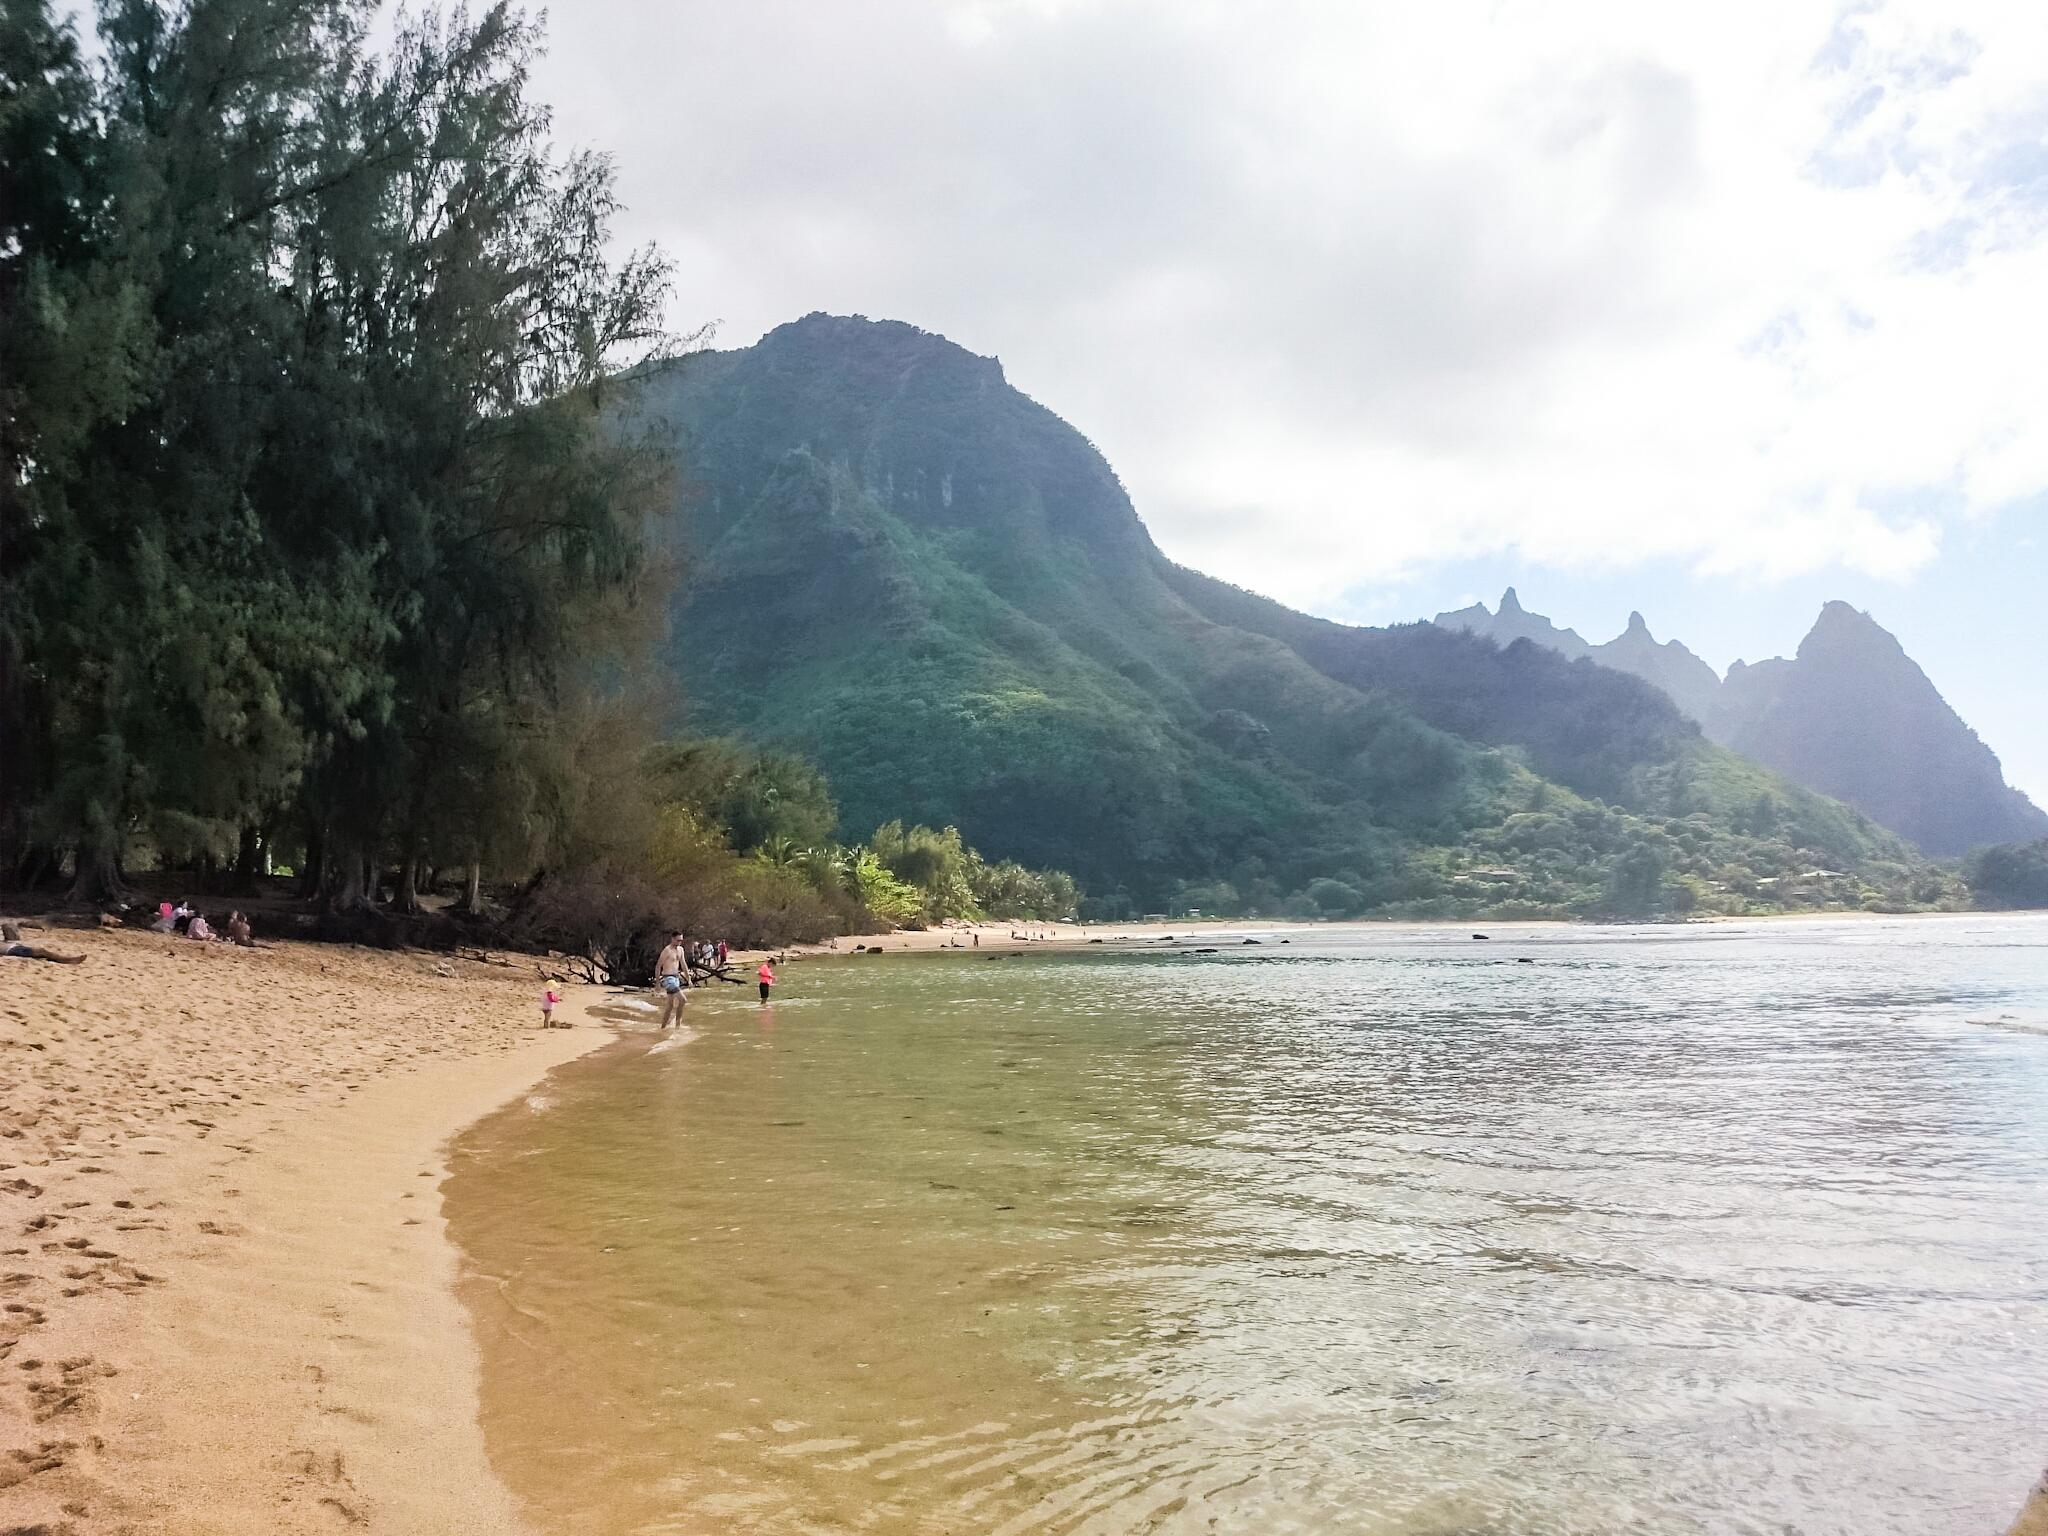 Tunnels beach in Kauai, Hawaii